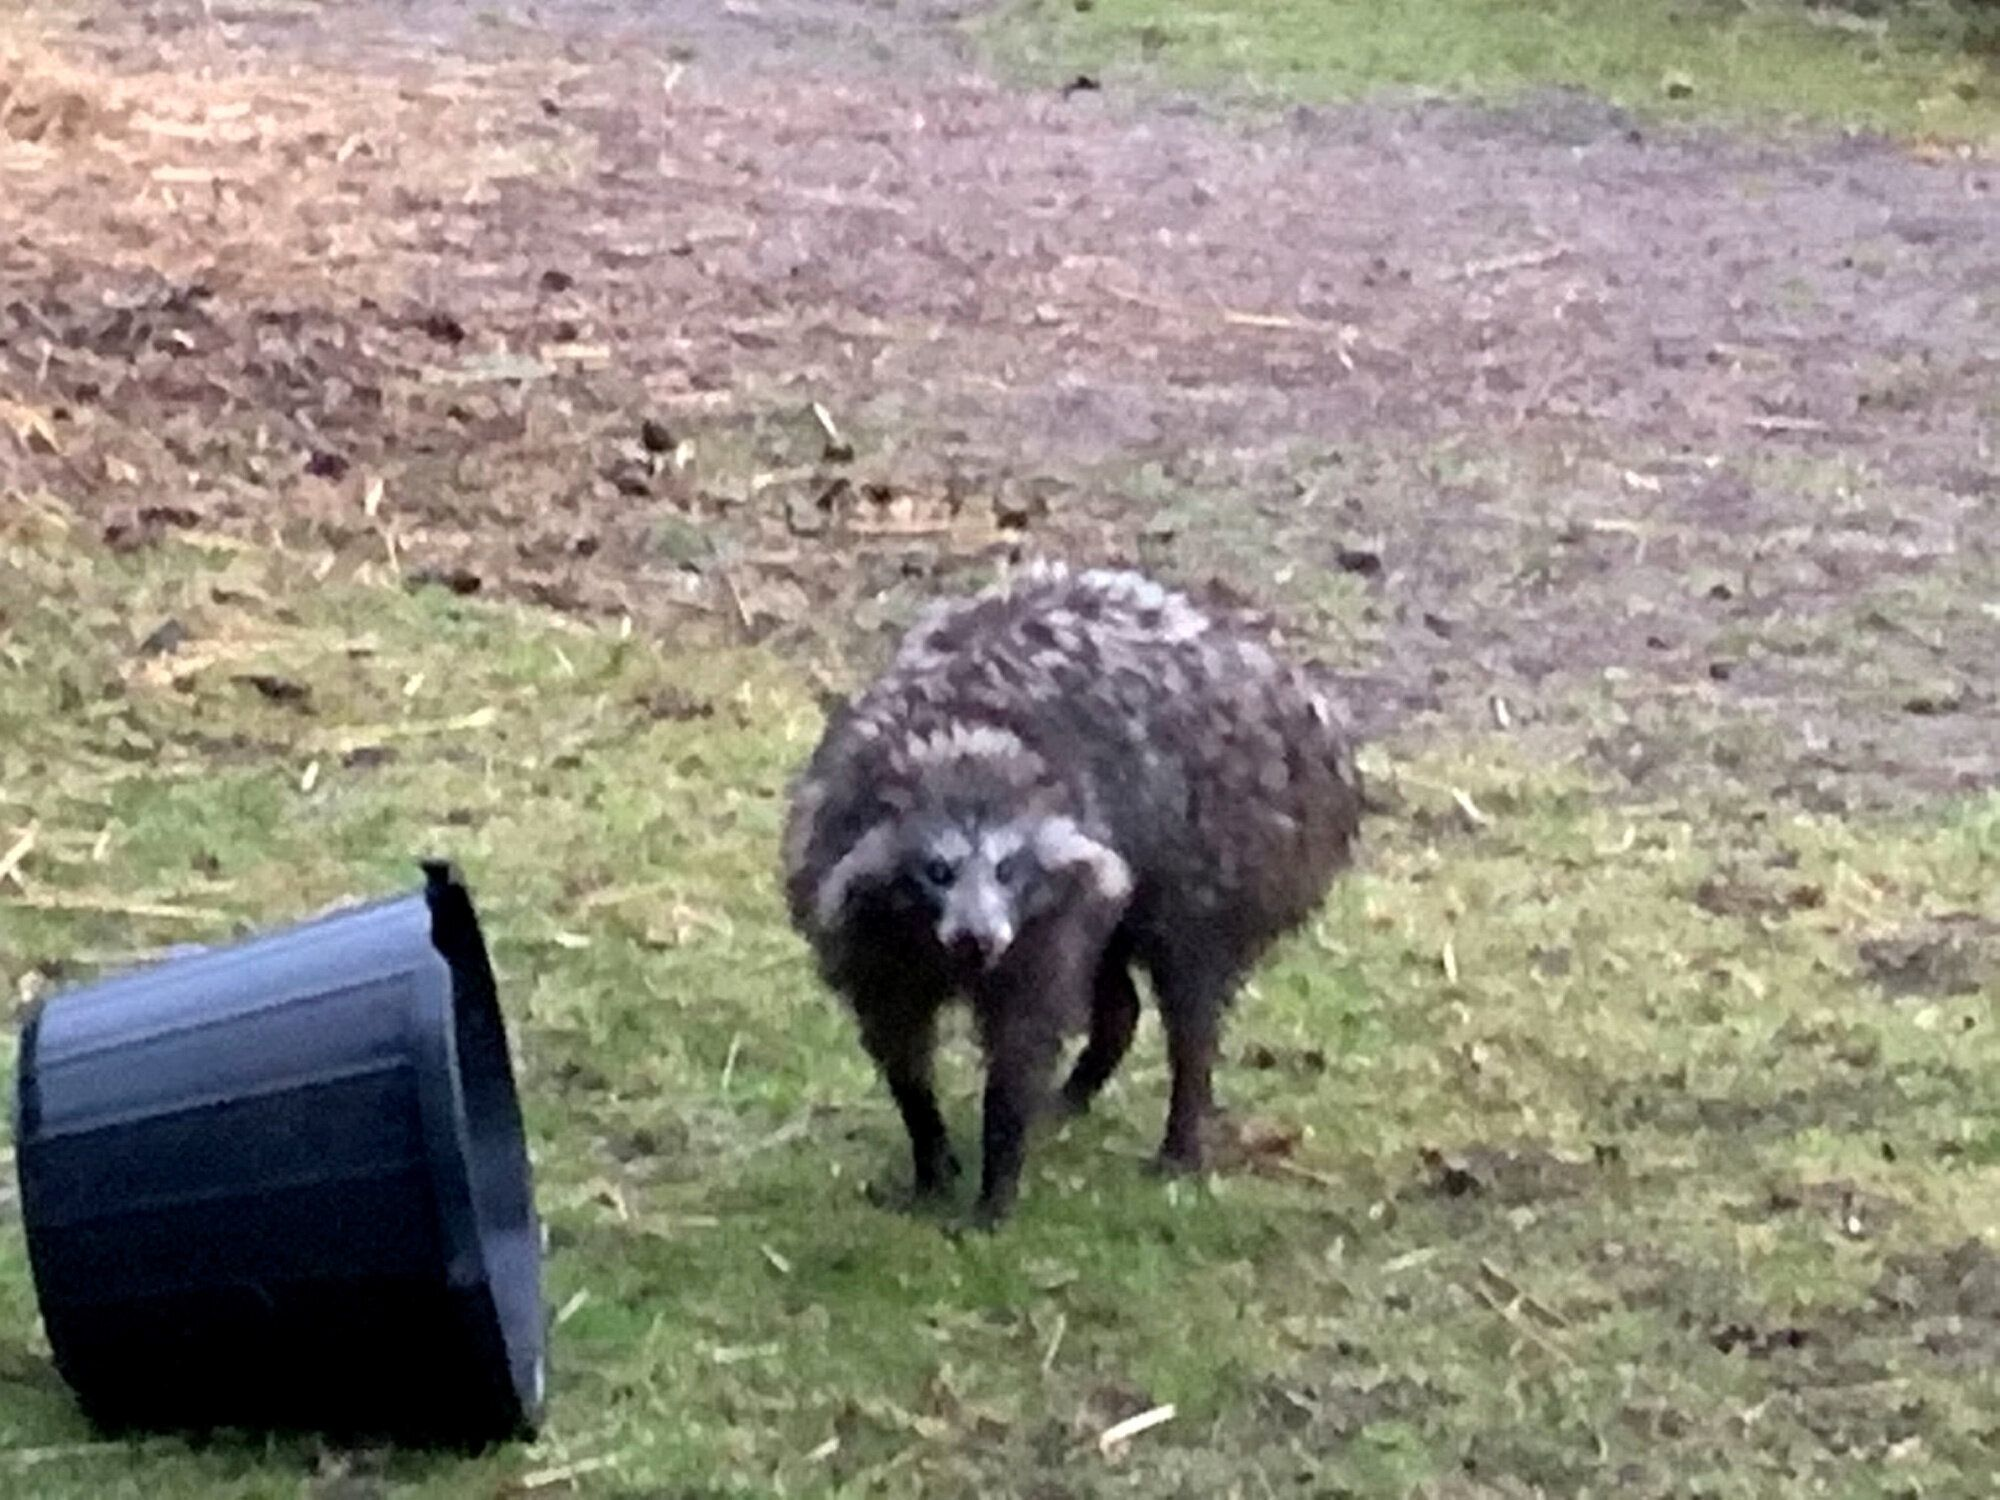 A picture showing one of the raccoon dogs. Residents have been warned not to approach them. (SWNS)